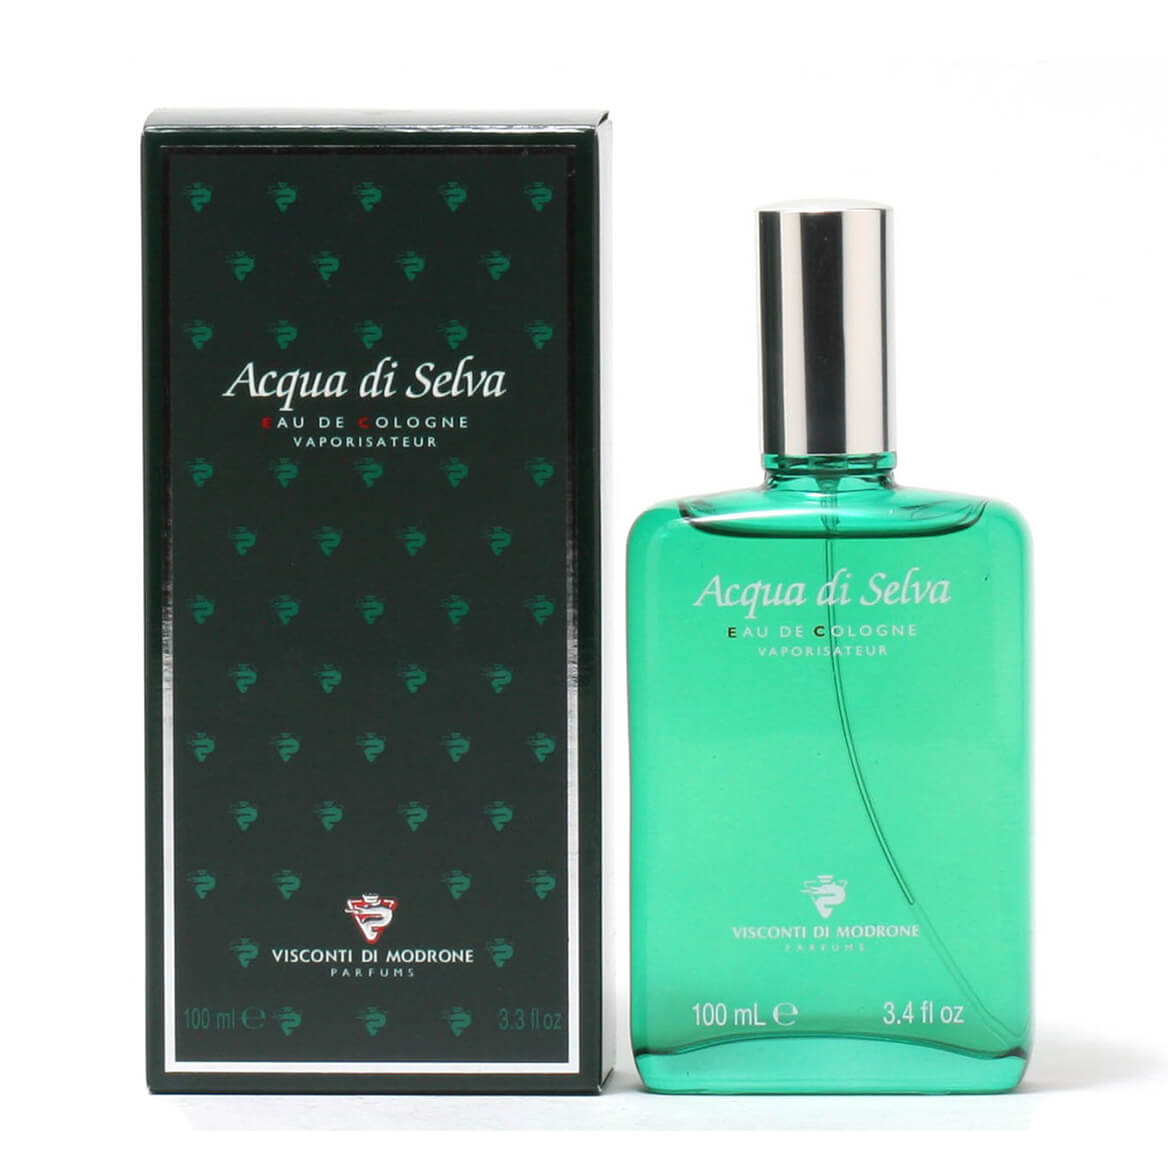 Visconti di Mondrone Acqua di Selva Men - EDC Spray 3.3oz